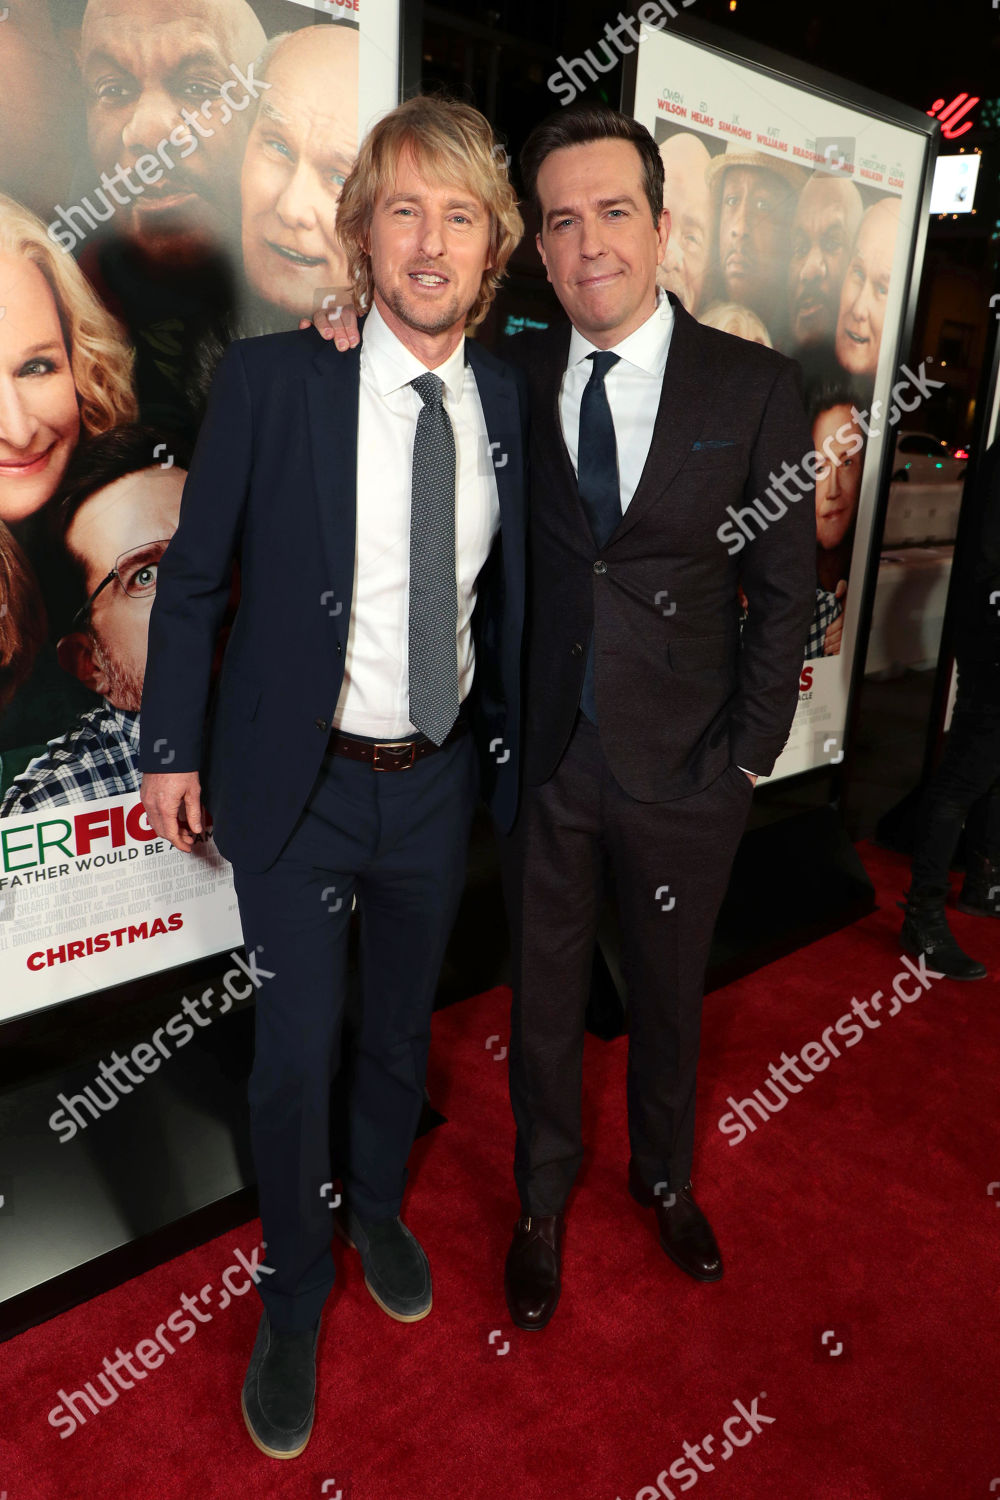 Warner Bros. Pictures World Premiere of FATHER FIGURES, Los Angeles, CA, USA - 13 December 2017: стоковое фото